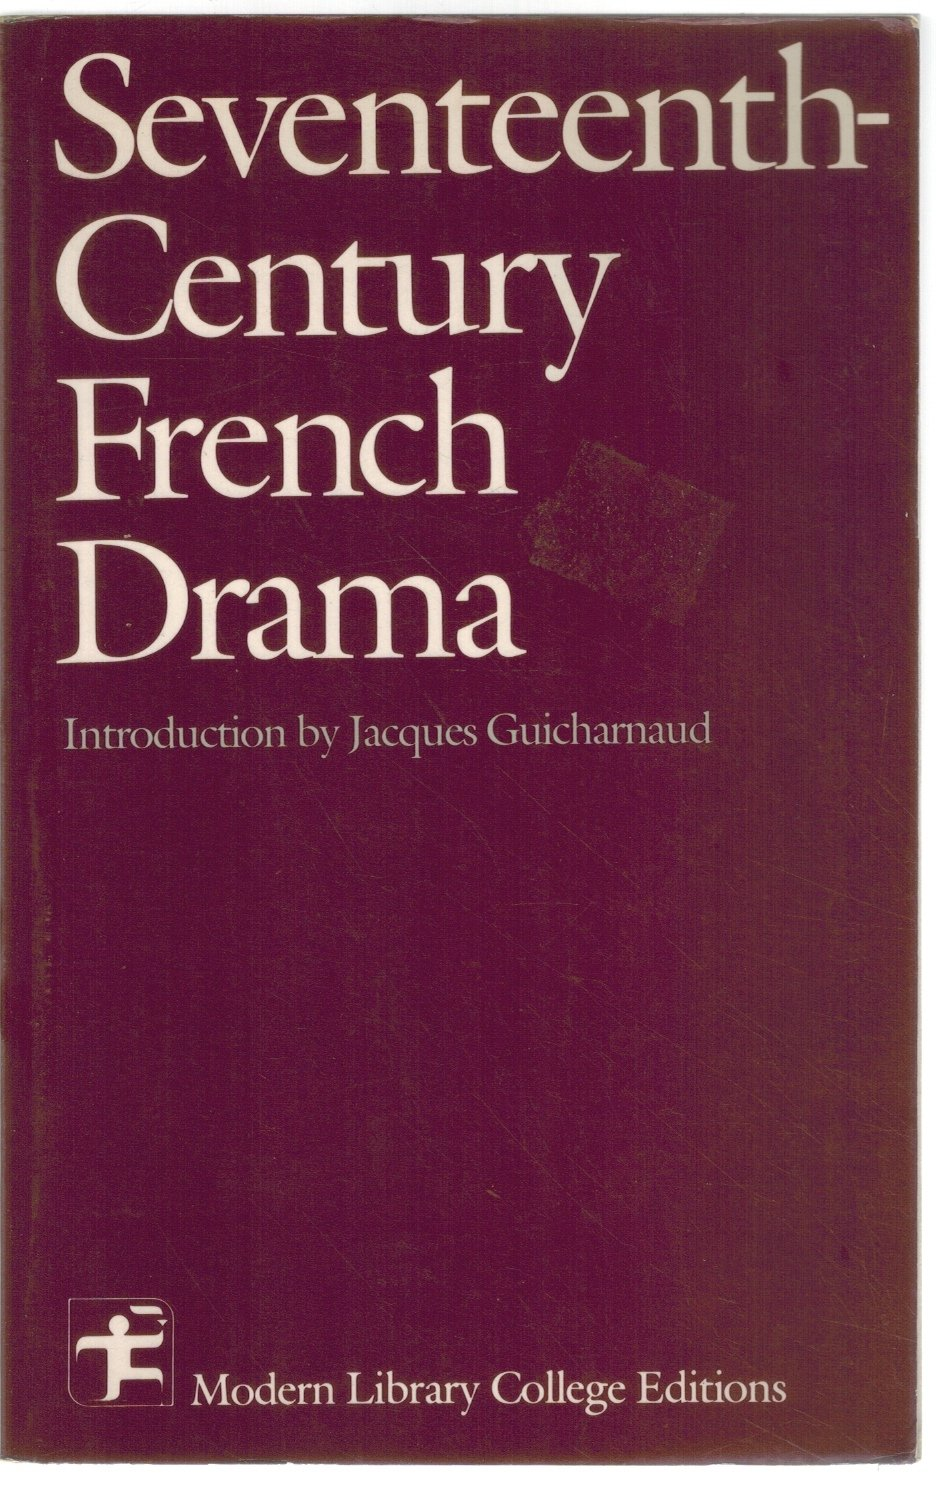 SEVENTEENTH-CENTURY FRENCH DRAMA  by Guicharnaud, Jacques